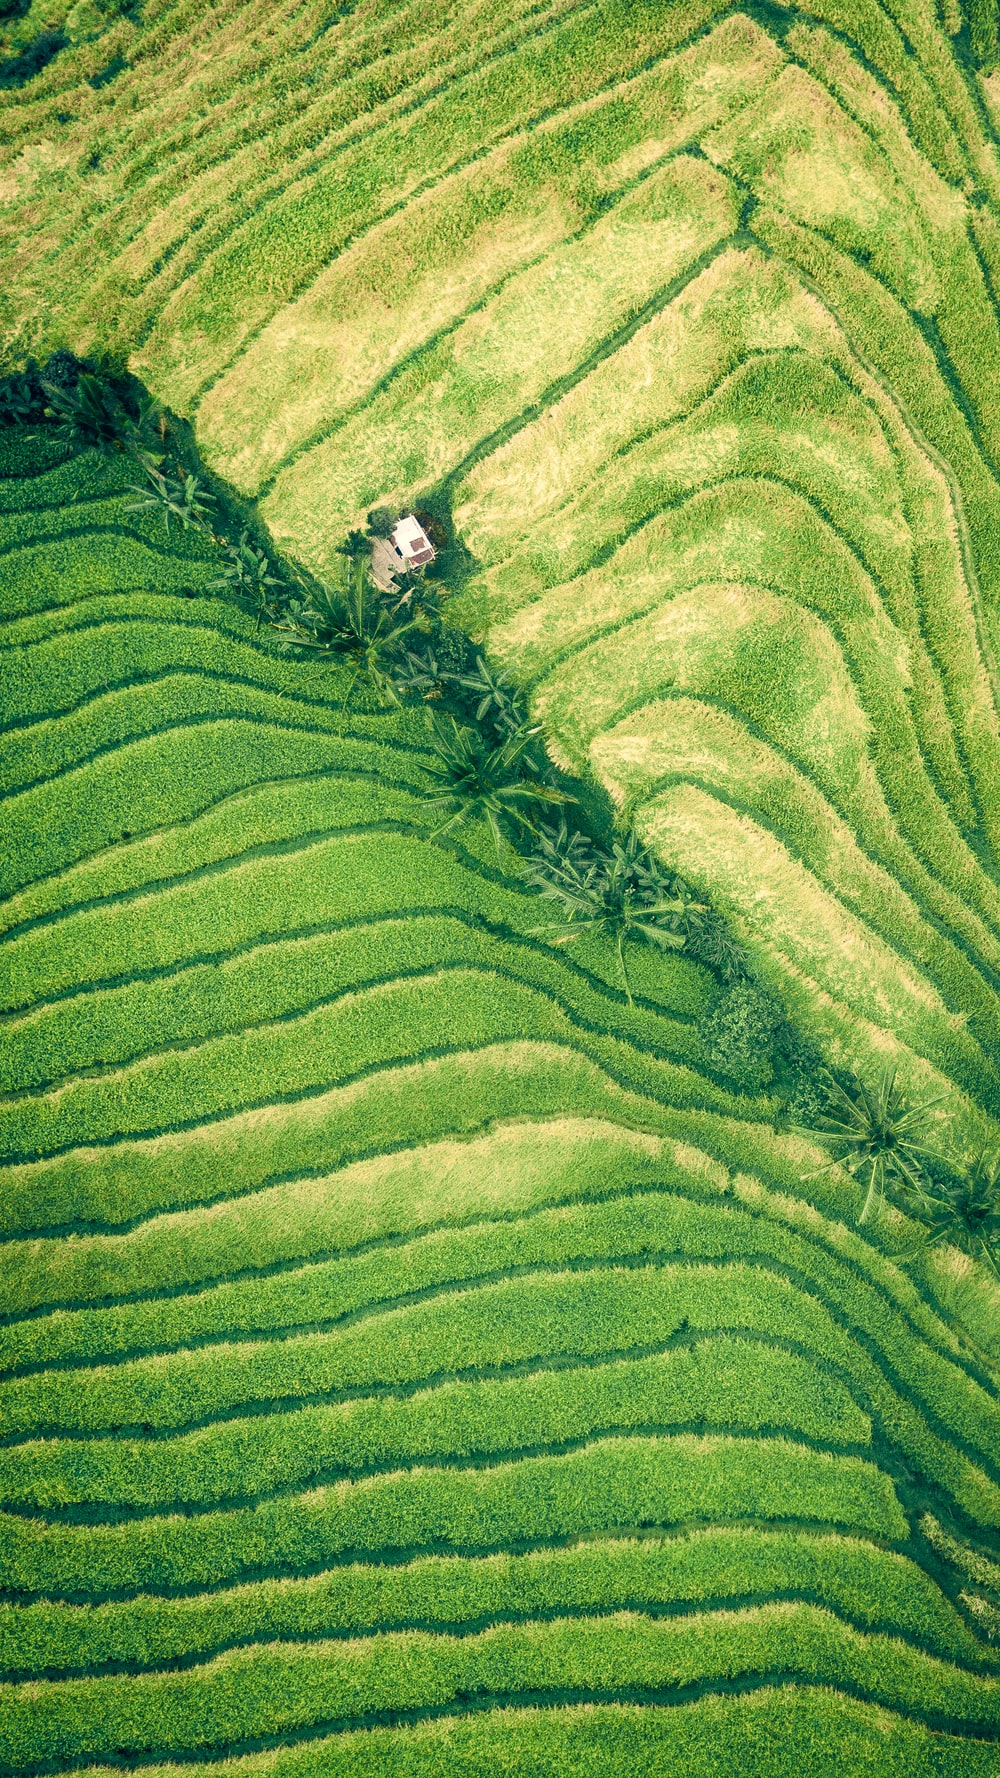 rice terraces aerial view